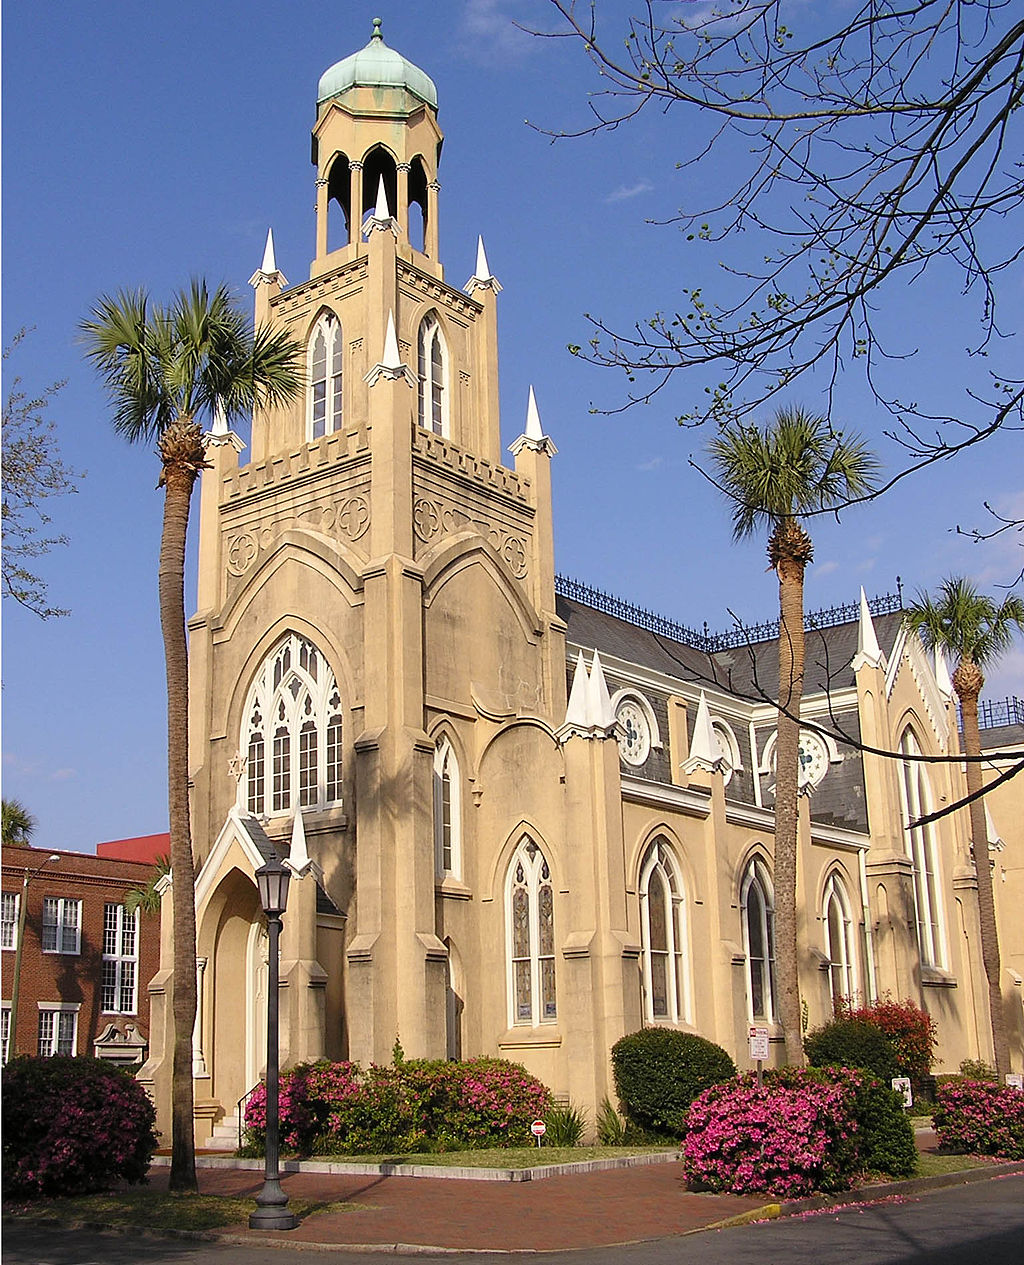 The Congregation Mickve Israel synagogue was built in 1878. Photo: Wikimedia Commons